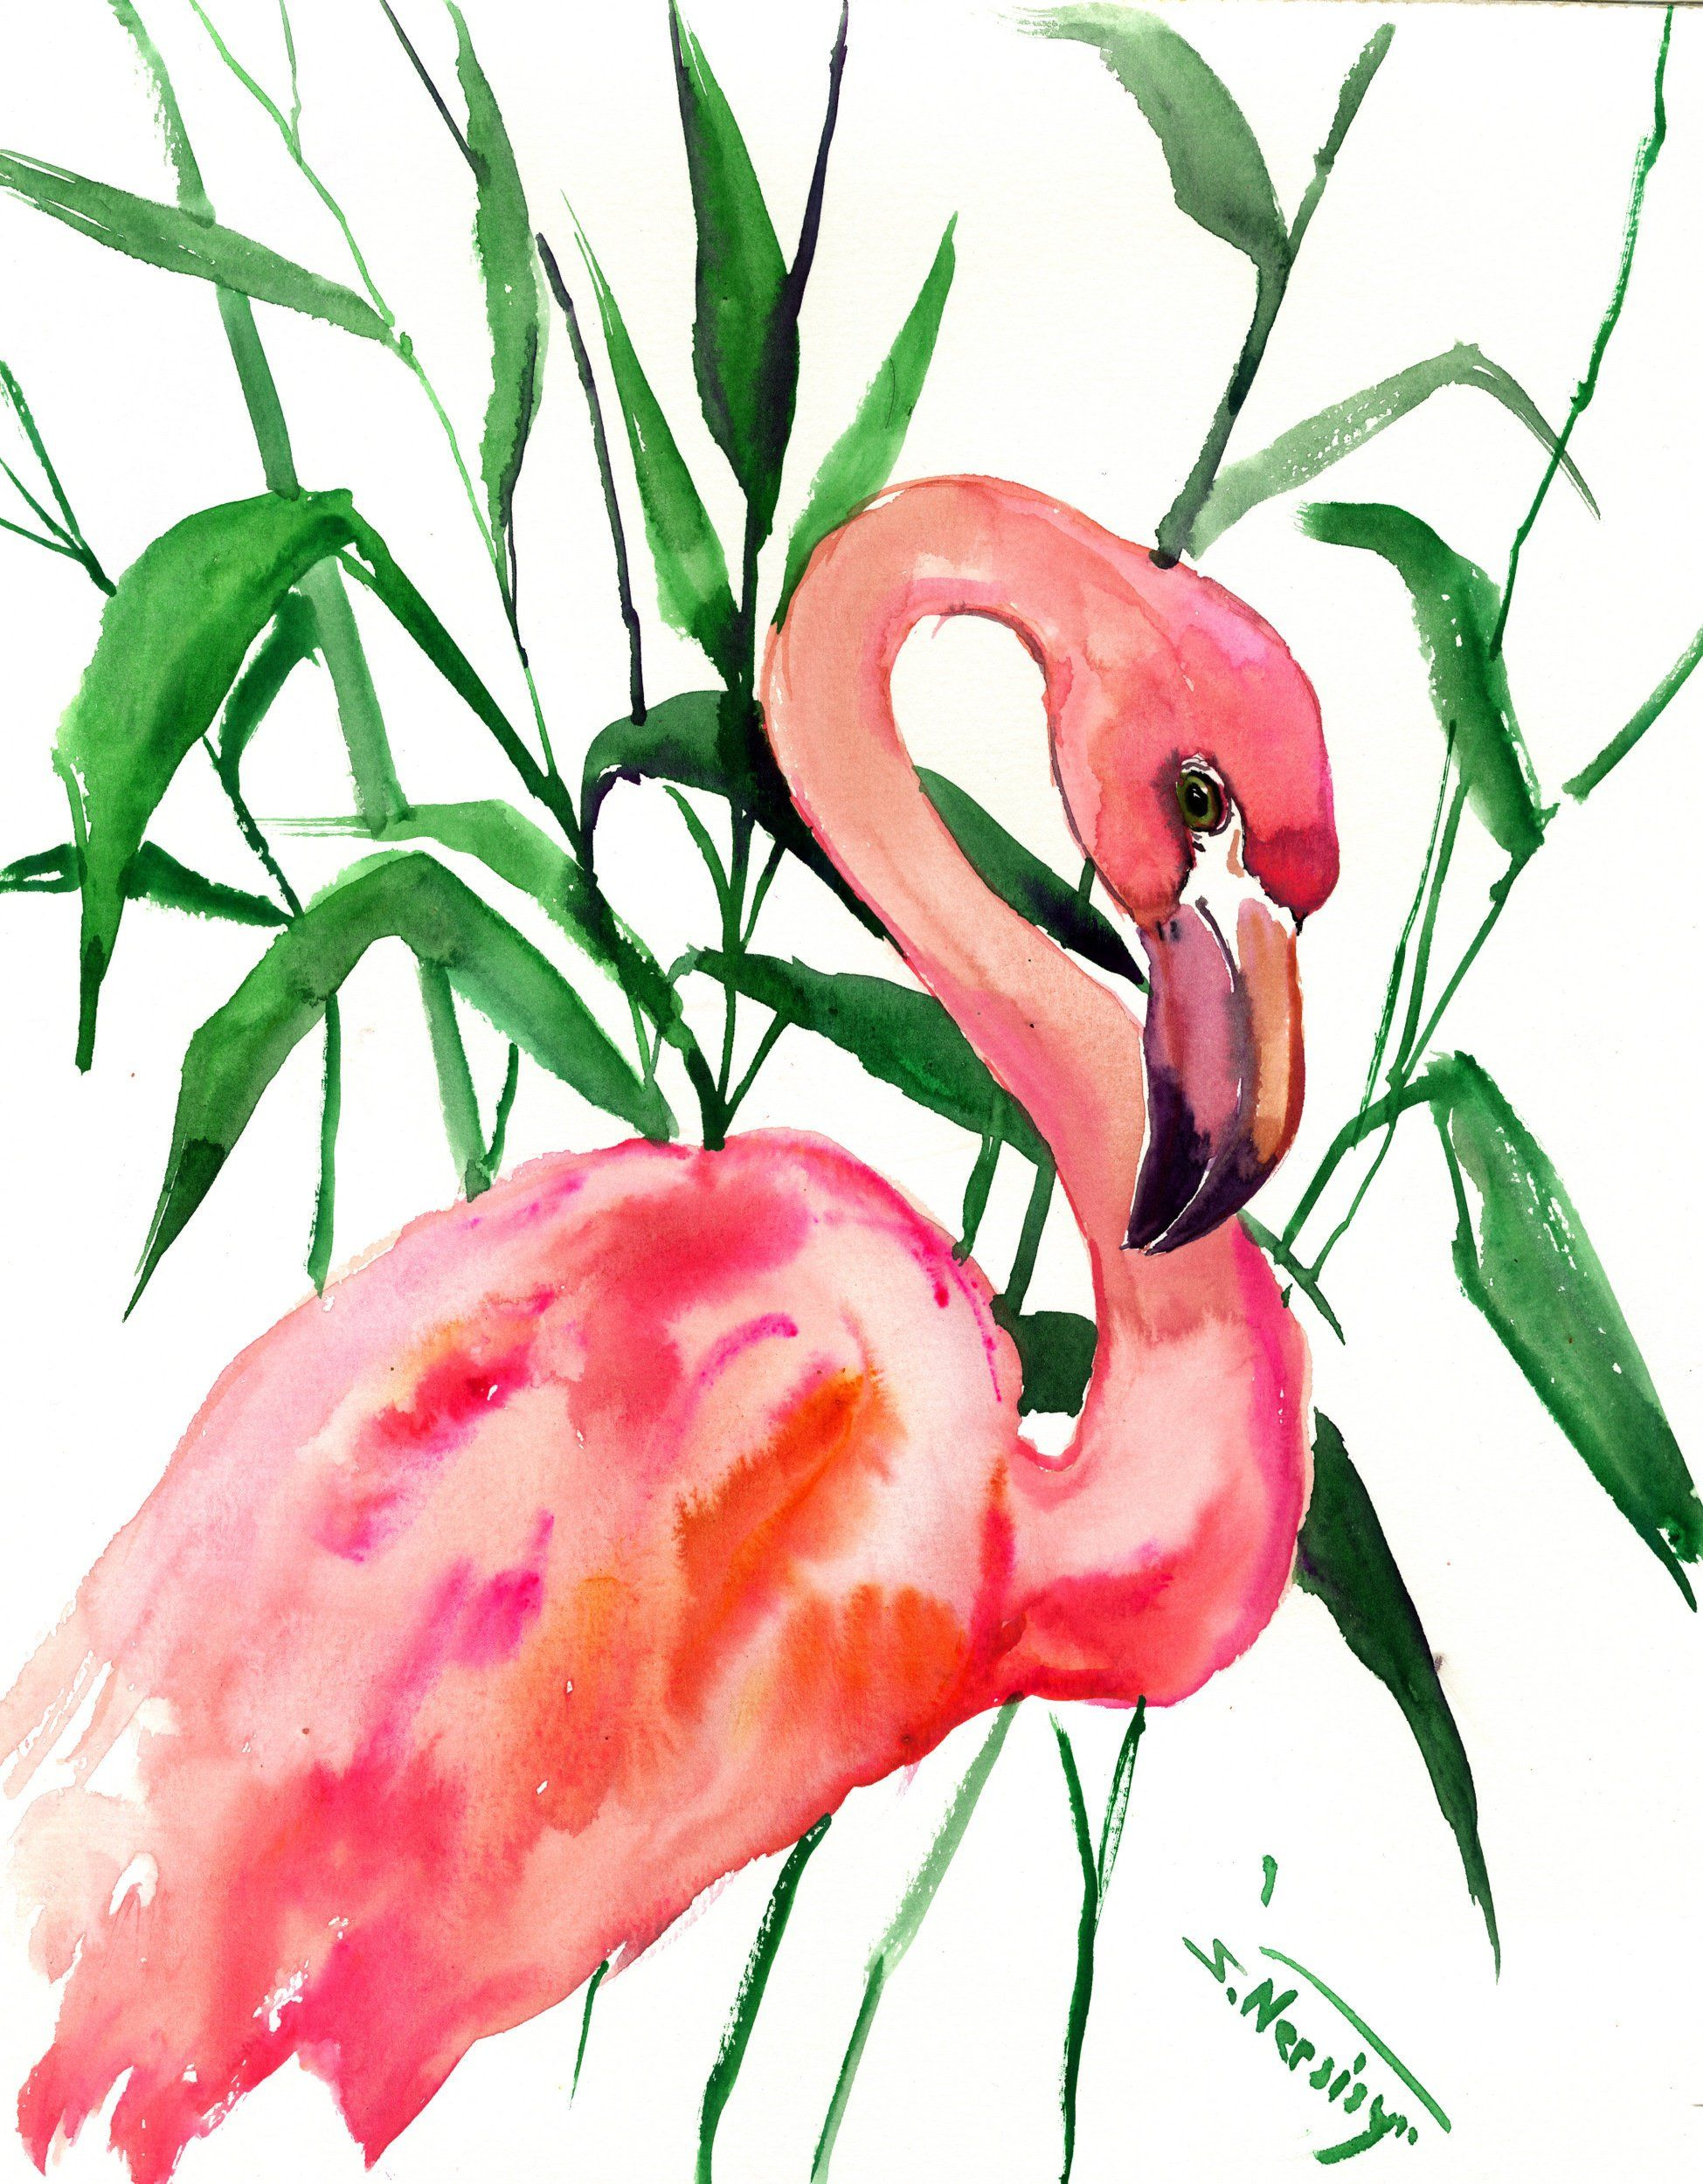 Pink Flamingo Artwork Painting Original Watercolor Pink Flamingo Lover Flamingo Painting Flamingo Wall Art Pink Ro Art Flamingo Artwork Flamingo Painting